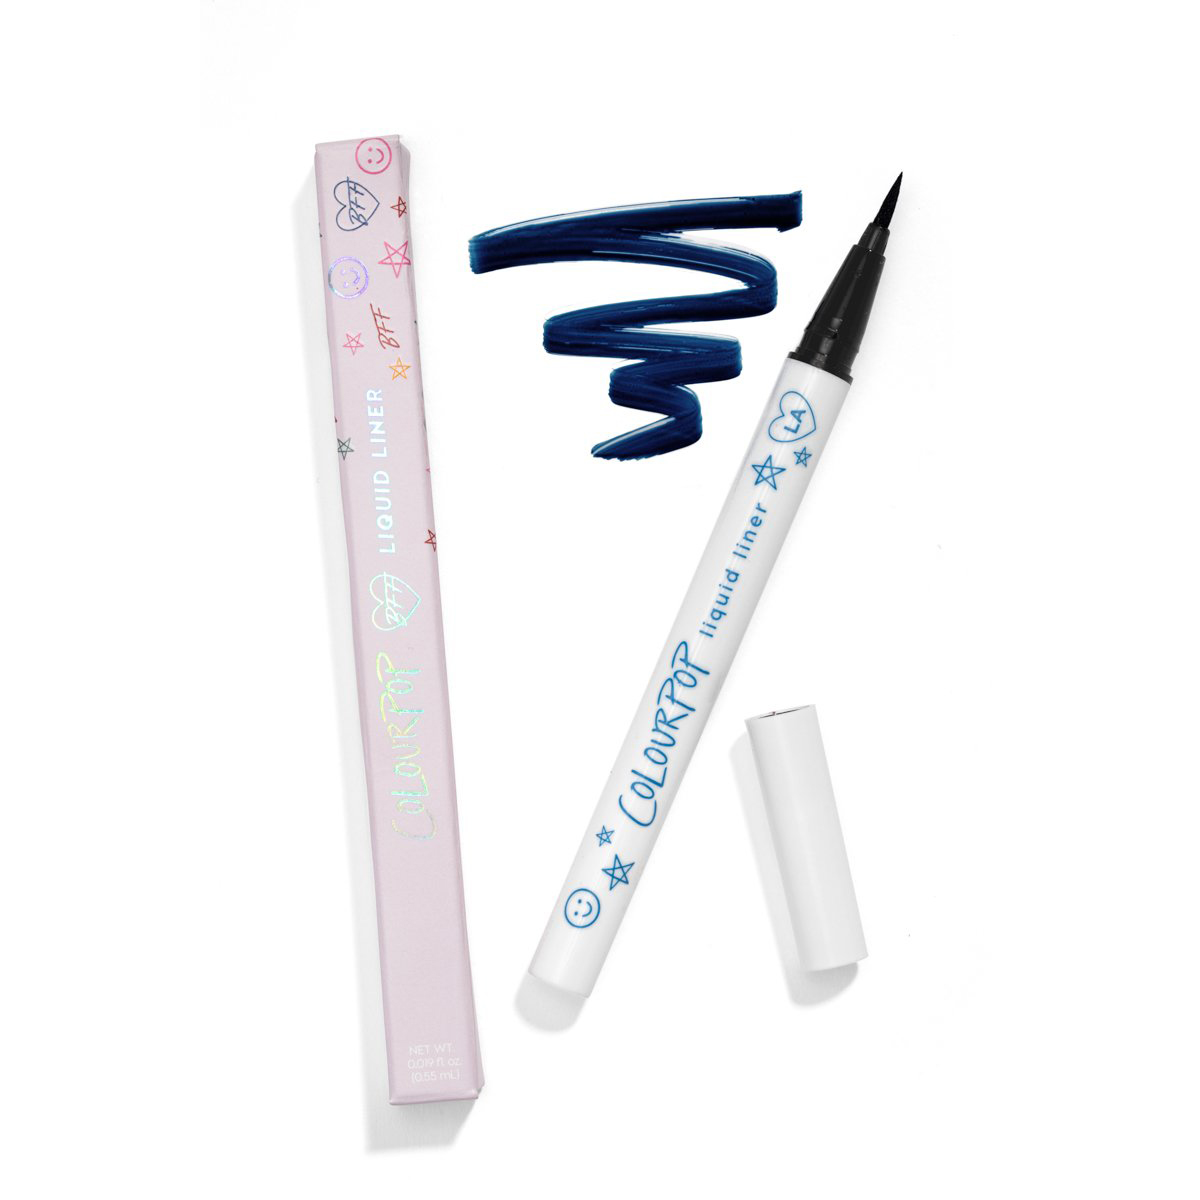 Marc Jacobs Beauty Highliner Gel Eye Crayon Eyeliner in Deep Navy